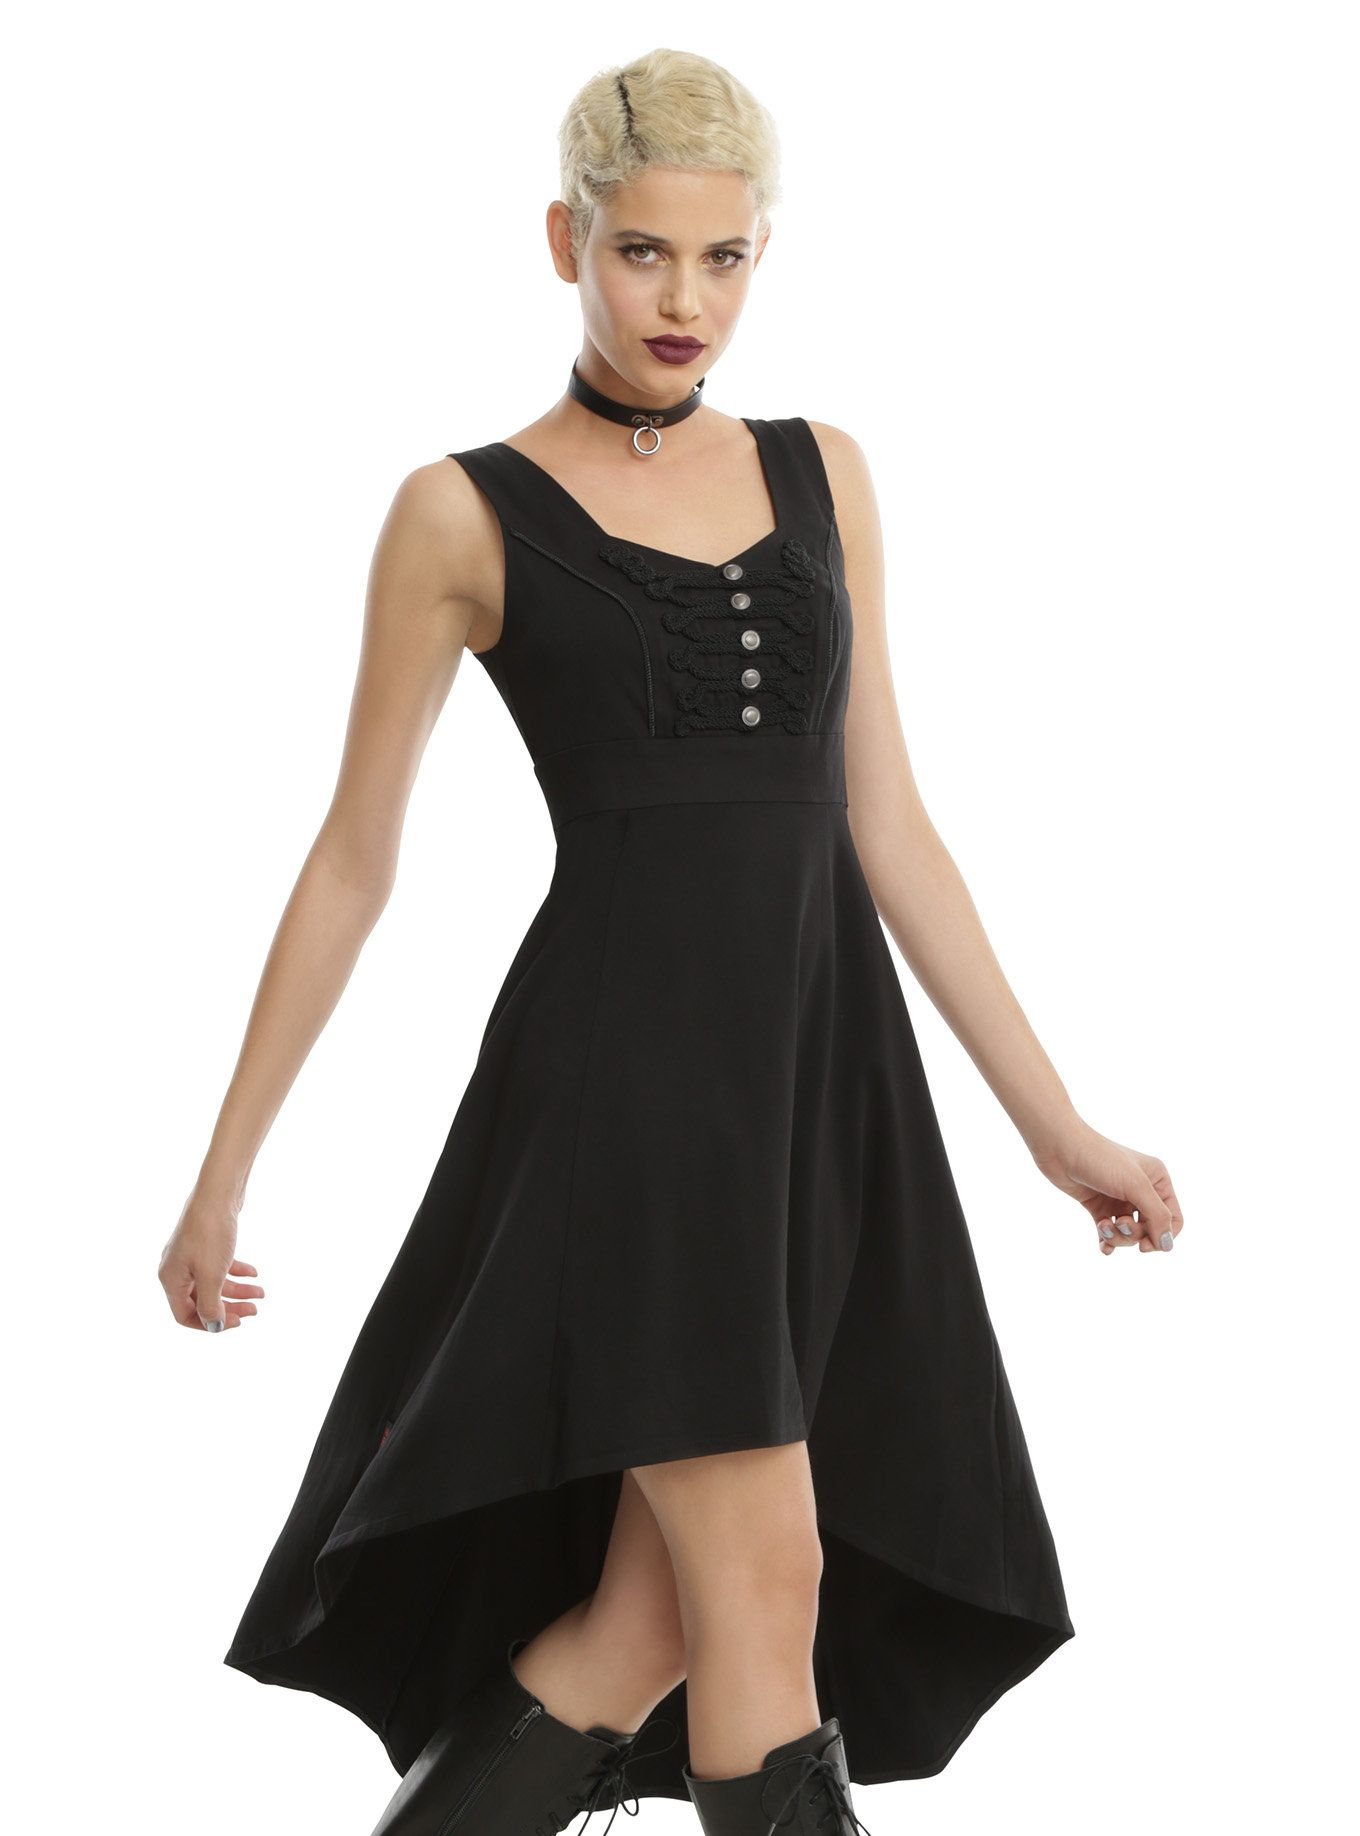 01b7e54b29  div Get a military look without being all buttoned up when you wear this  dress from Royal Bones by Tripp. The black dress has adjustable buckle  straps